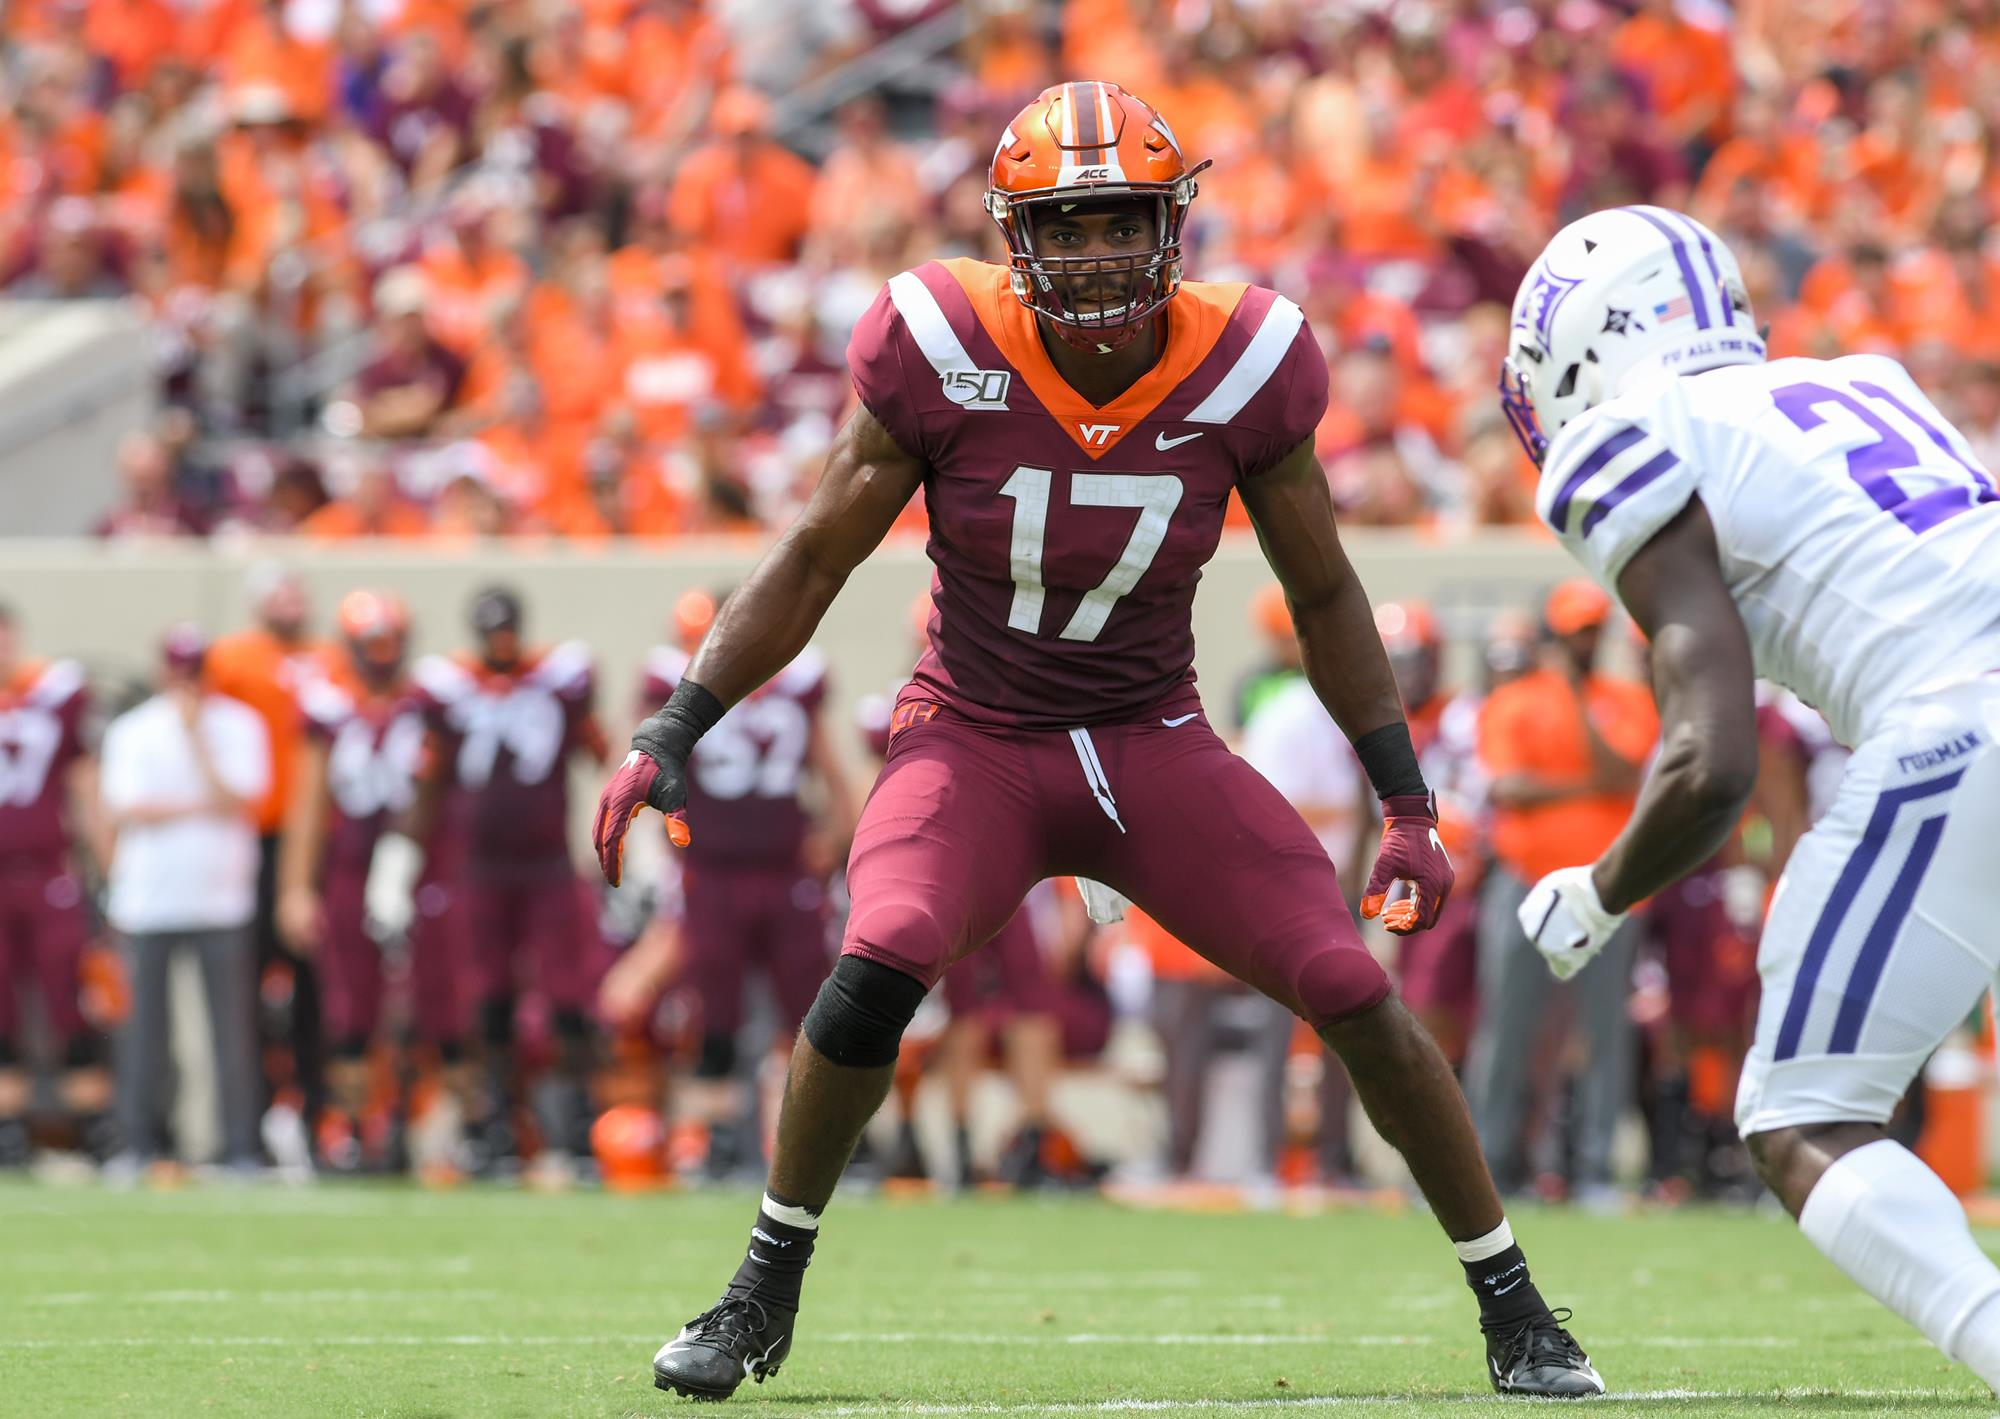 Divine Deablo - Football - Virginia Tech Athletics